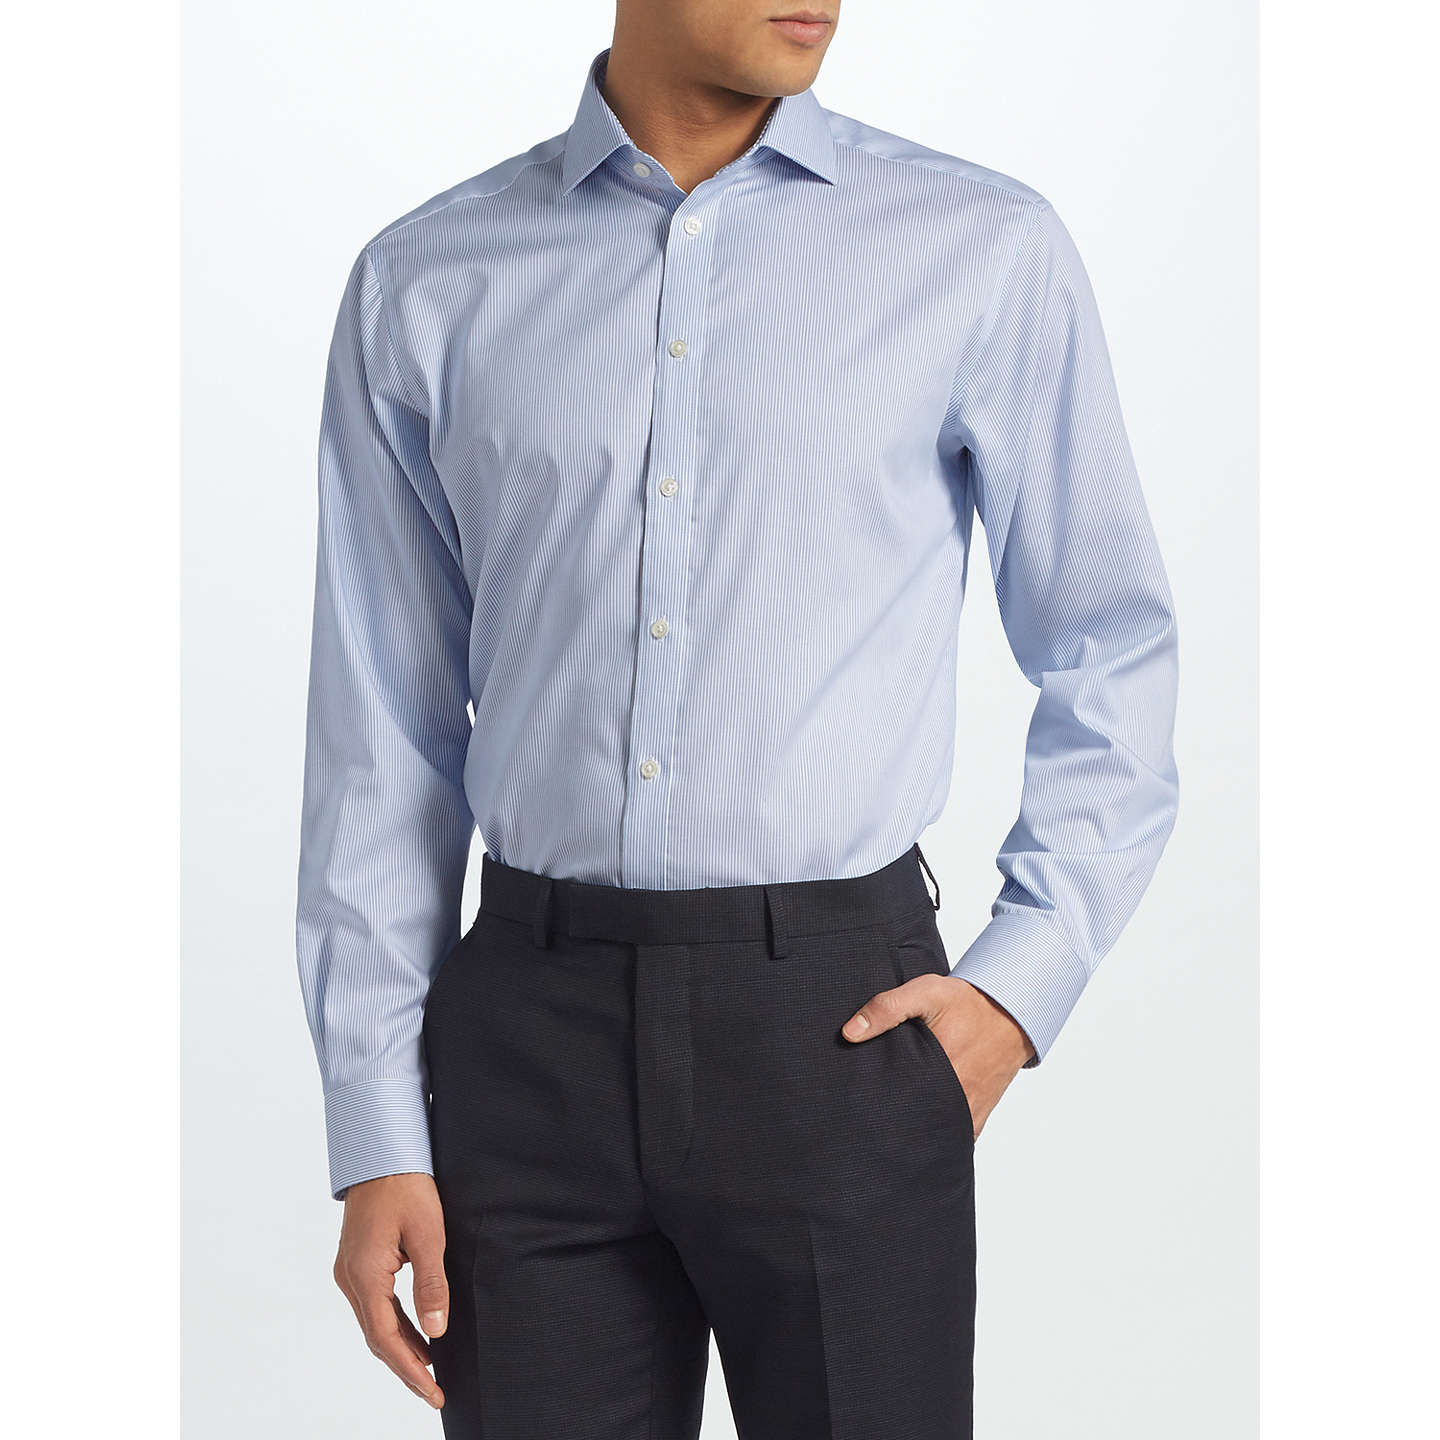 BuyJohn Lewis Non Iron Bengal Stripe Regular Fit Shirt, Blue, 15 Online at johnlewis.com